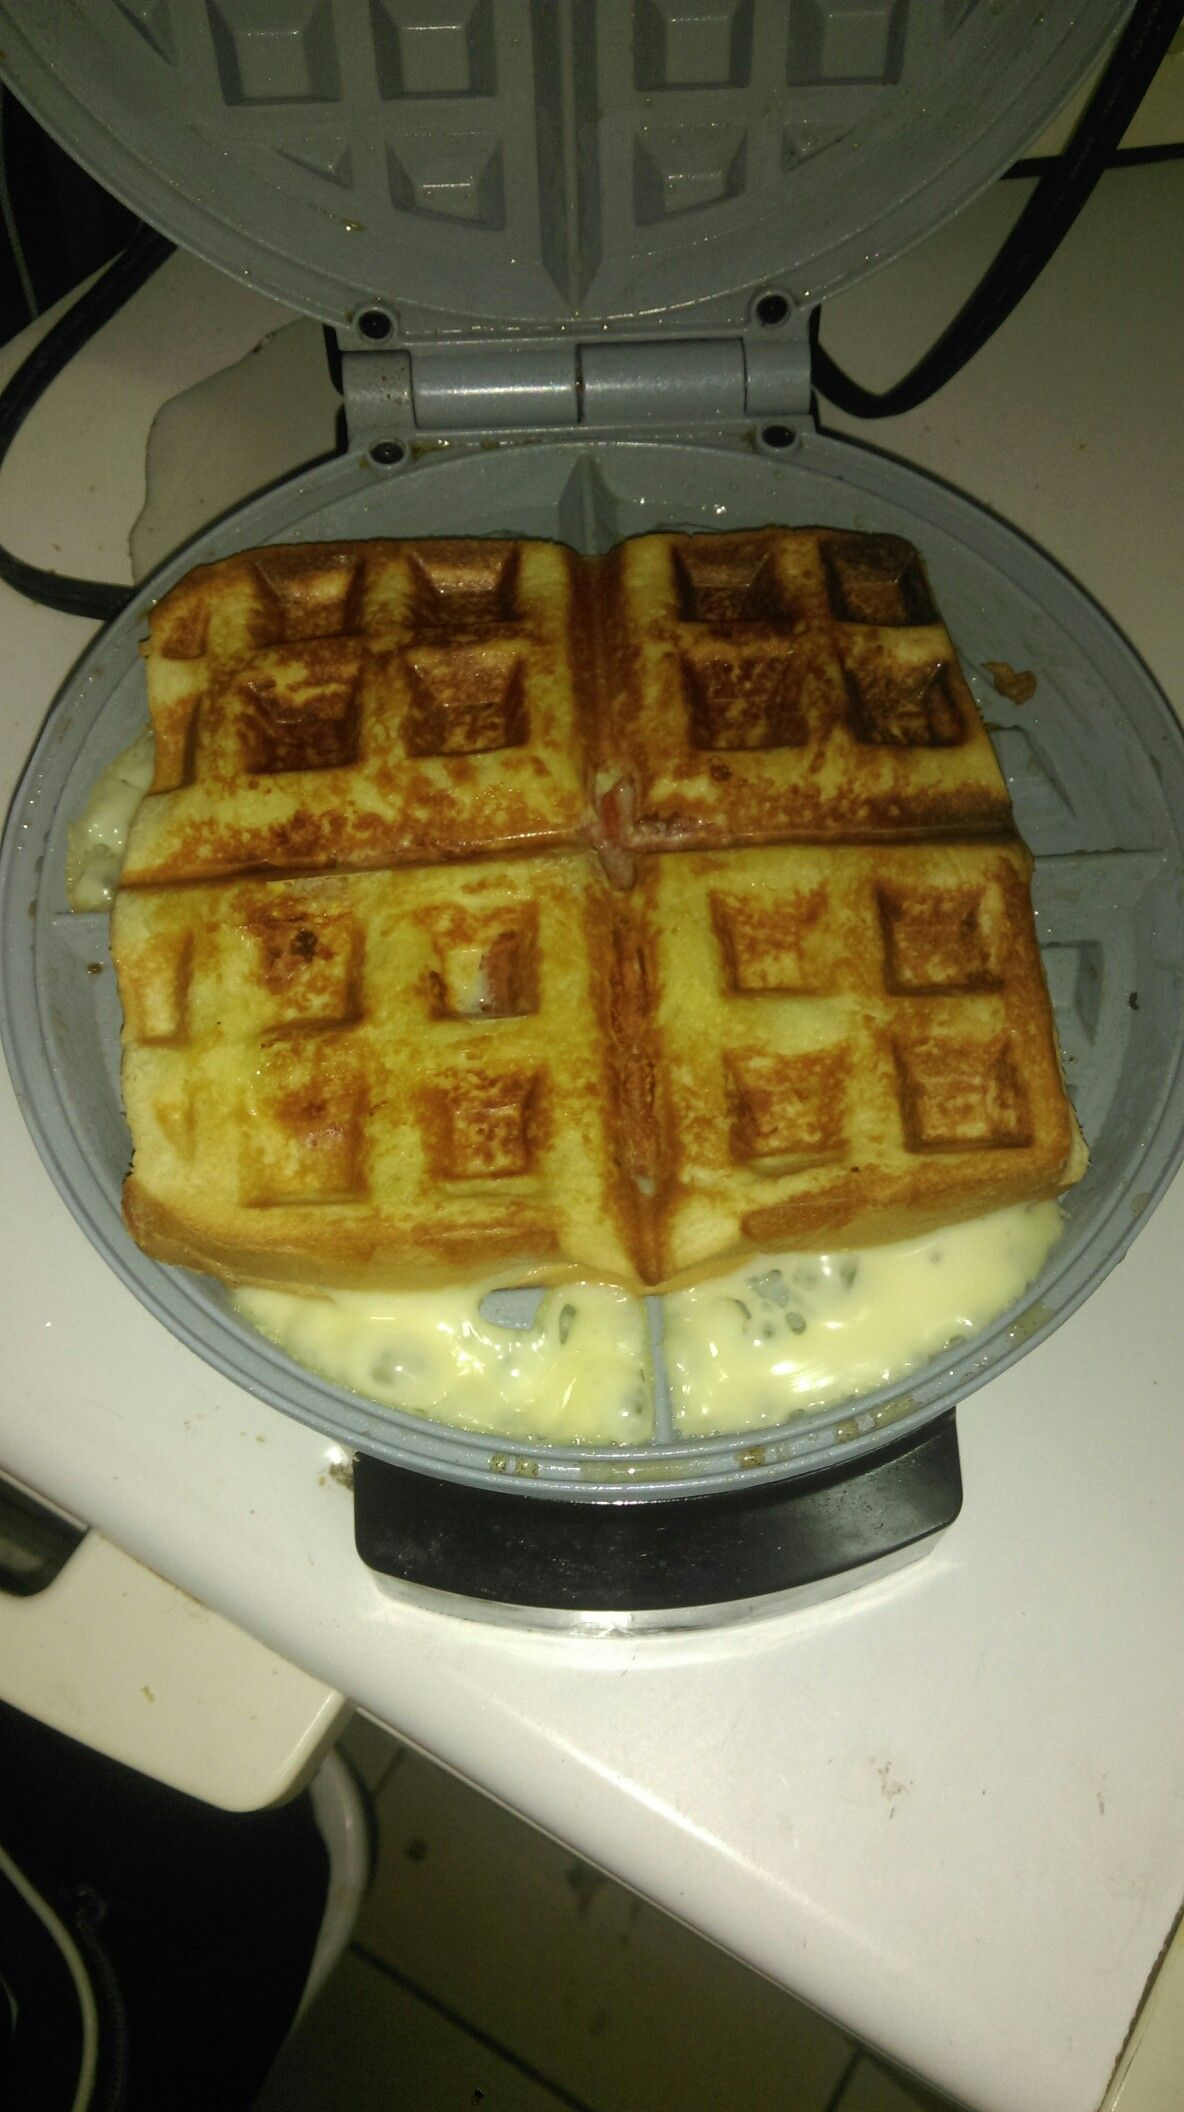 Bread, egg, sausages and cheese in a waffle maker.